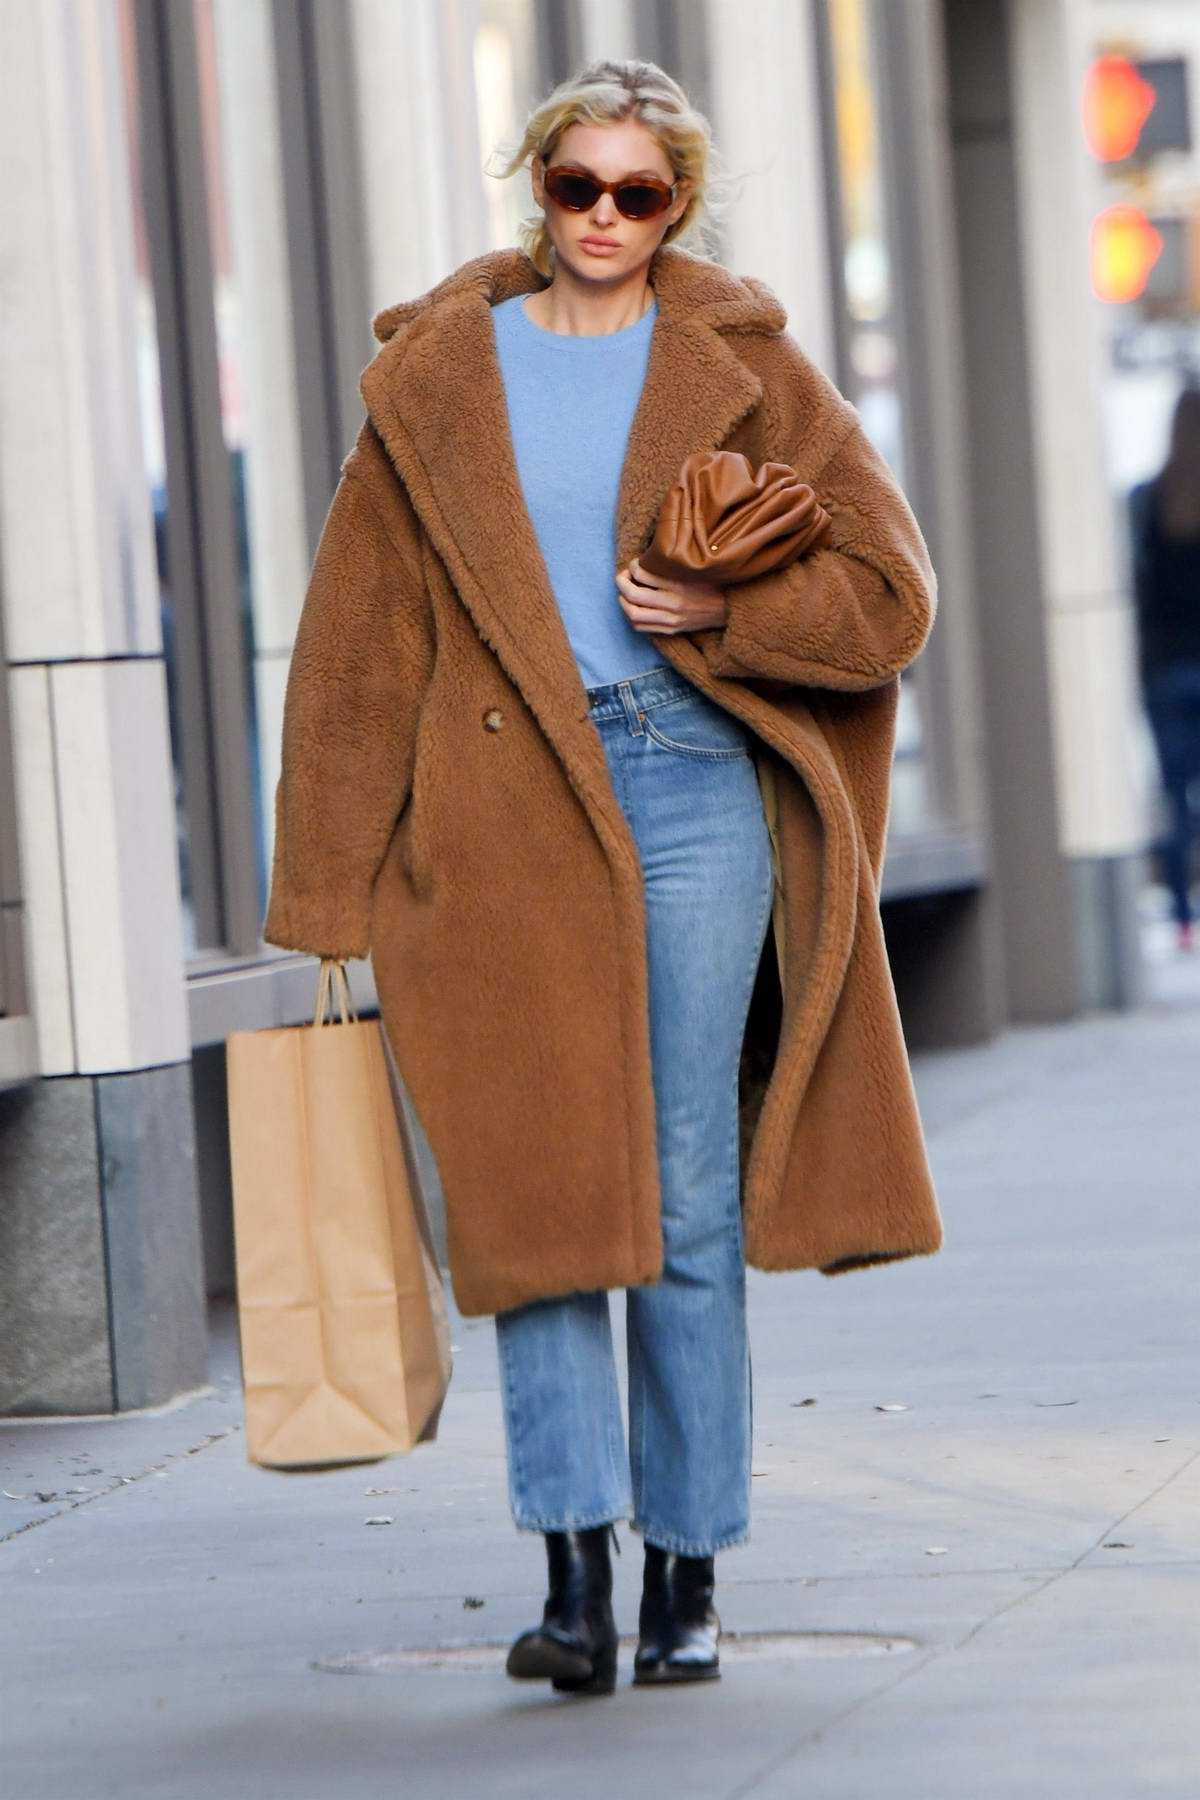 Elsa Hosk looks cozy in a brown teddy coat as steps out for a stroll through New York